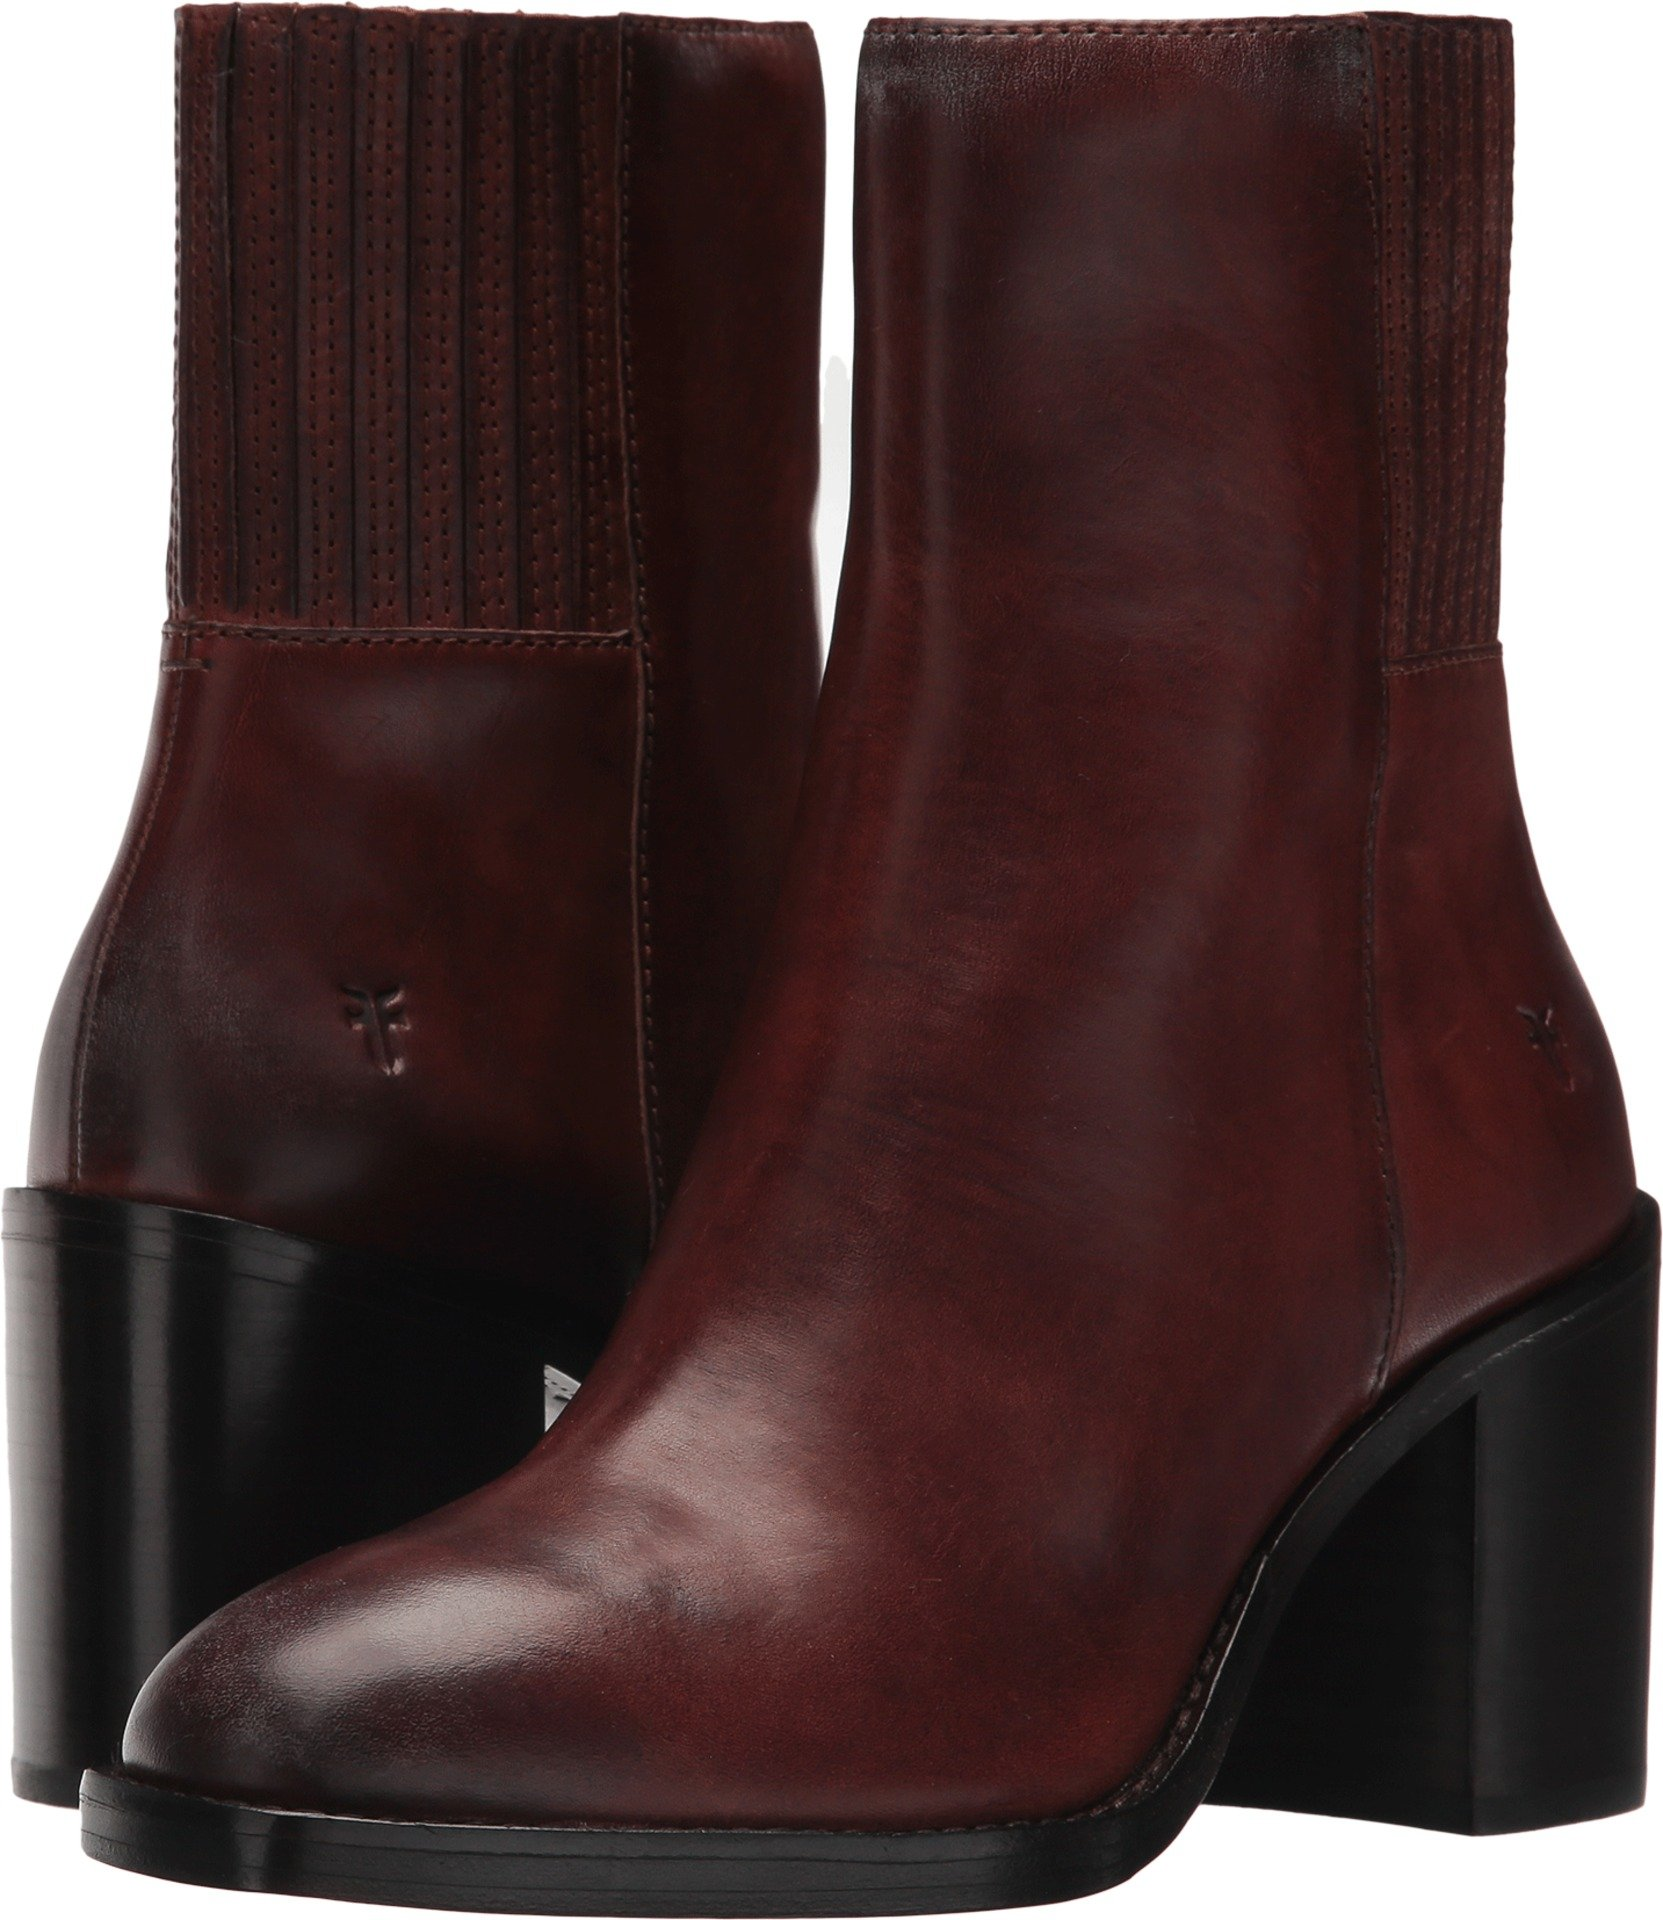 FRYE Women's Pia Short Chelsea Boot, Brown Vintage Leather, 8.5 M US